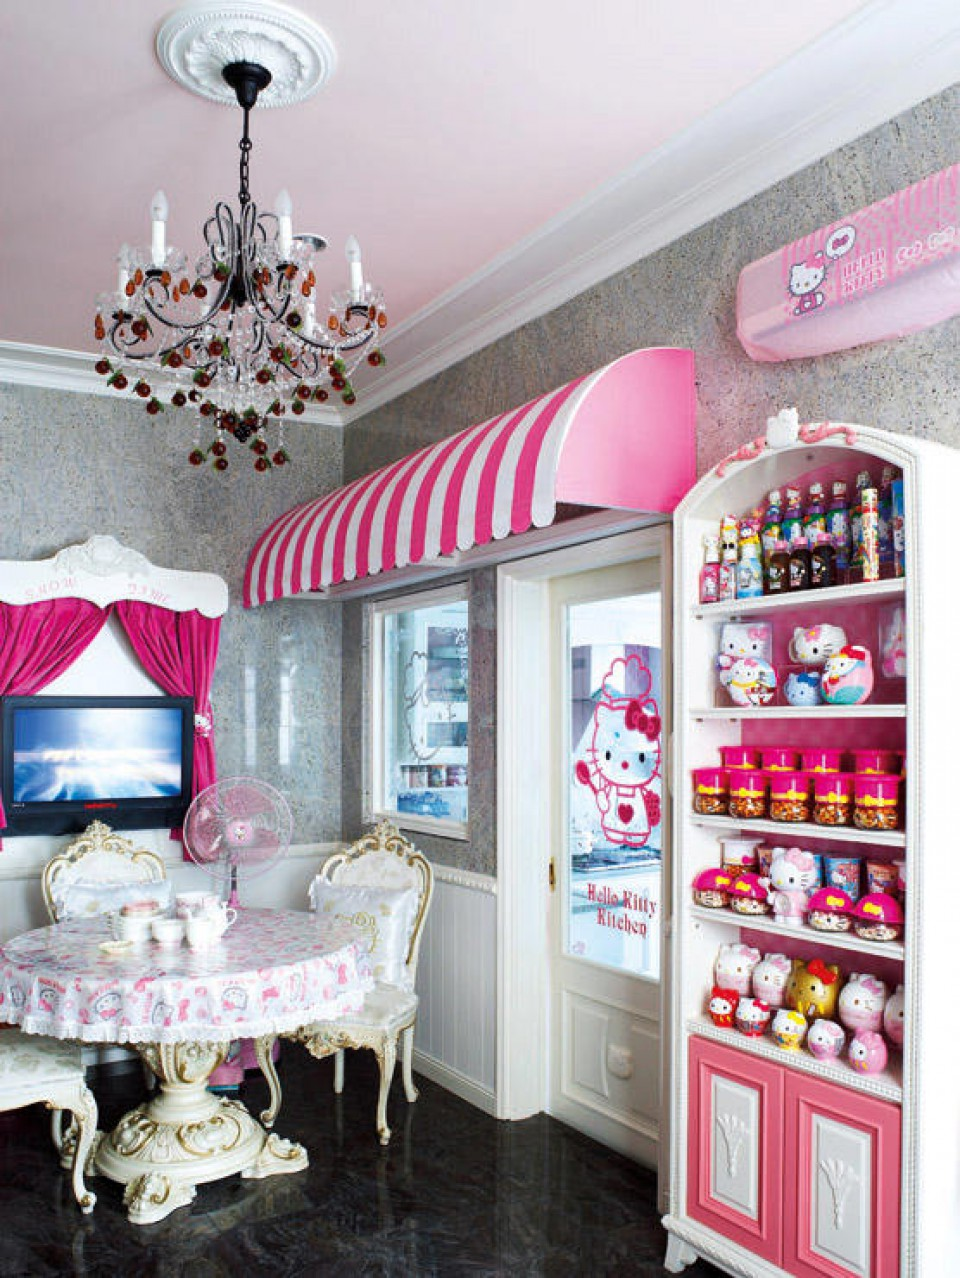 Serba Hello Kitty Rumah Tema Hello Kitty Dari Hiasan Sampai Furniture Serba Pink